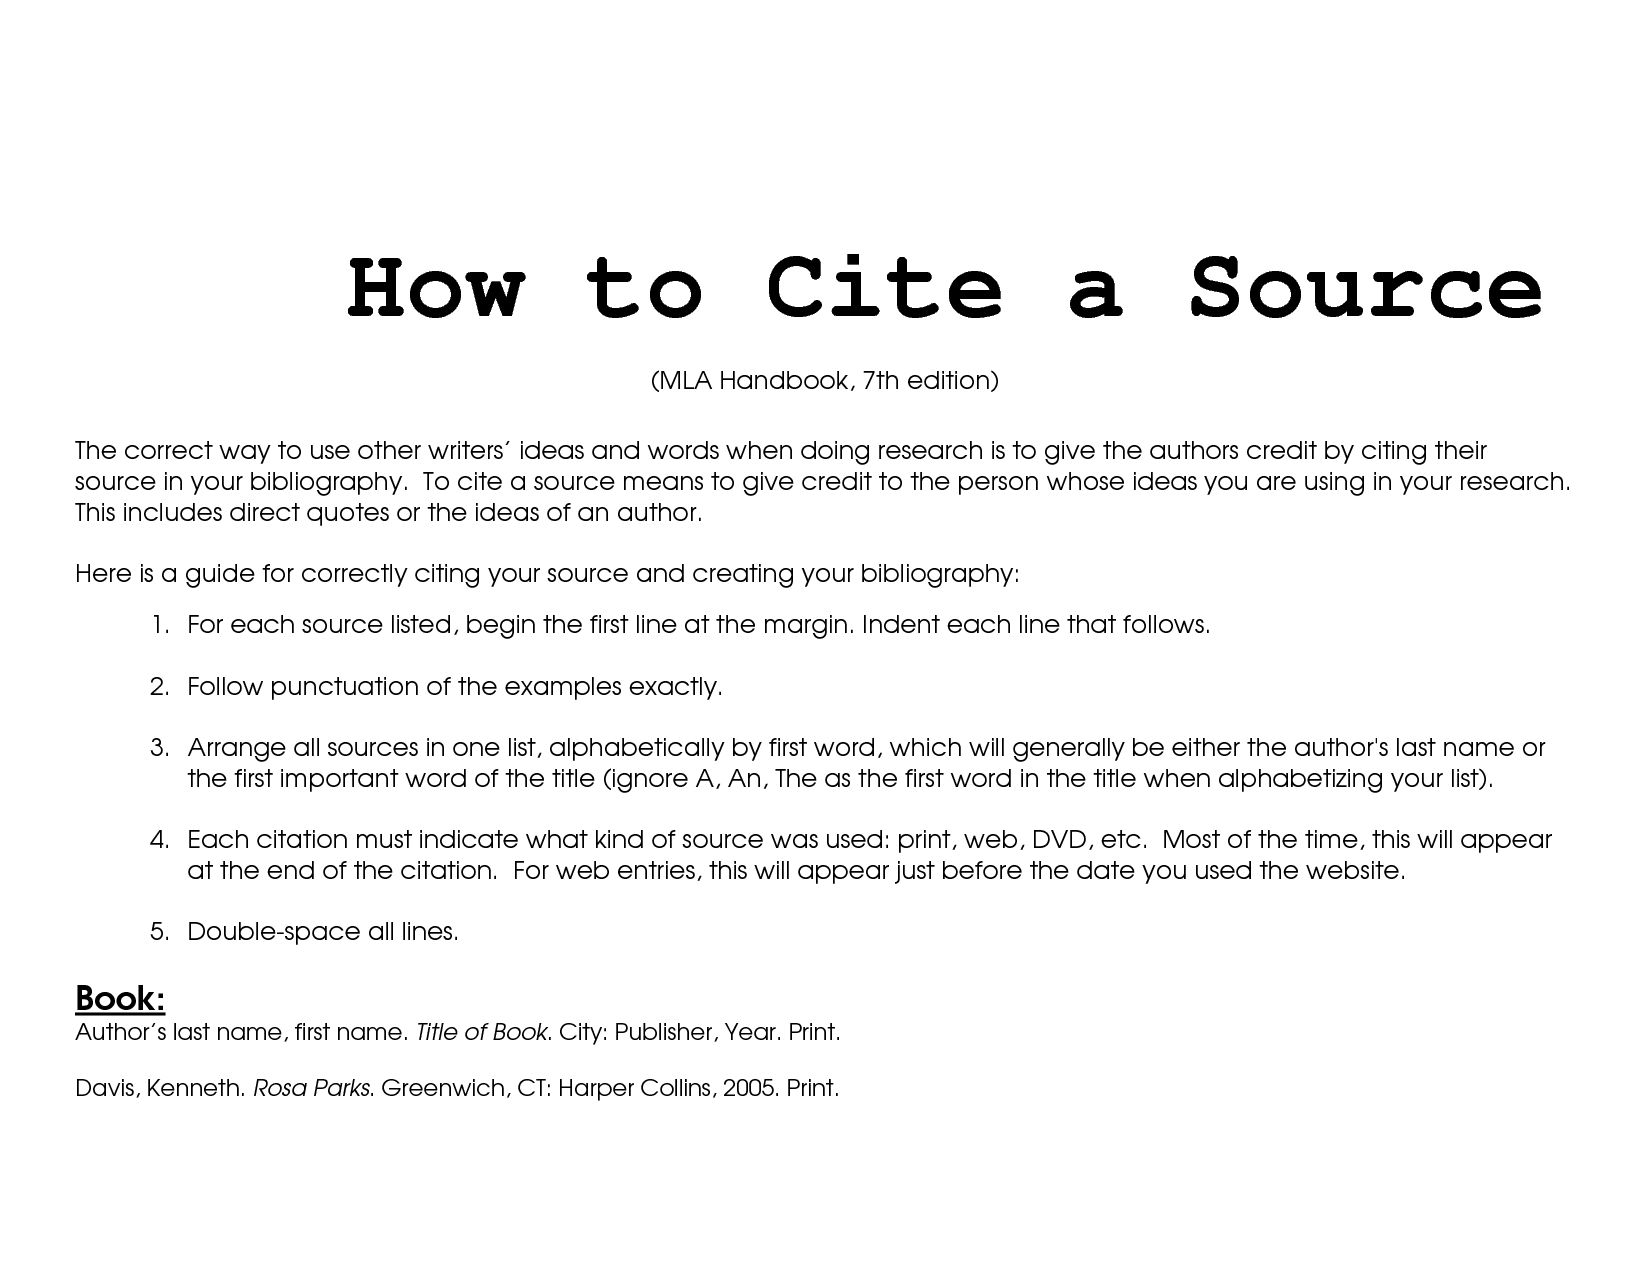 Citing sources in mla style enc1102libraryinstruction libguides cite your sources mla retrieved from httpdocstocdocs132890878cite your sources mla ccuart